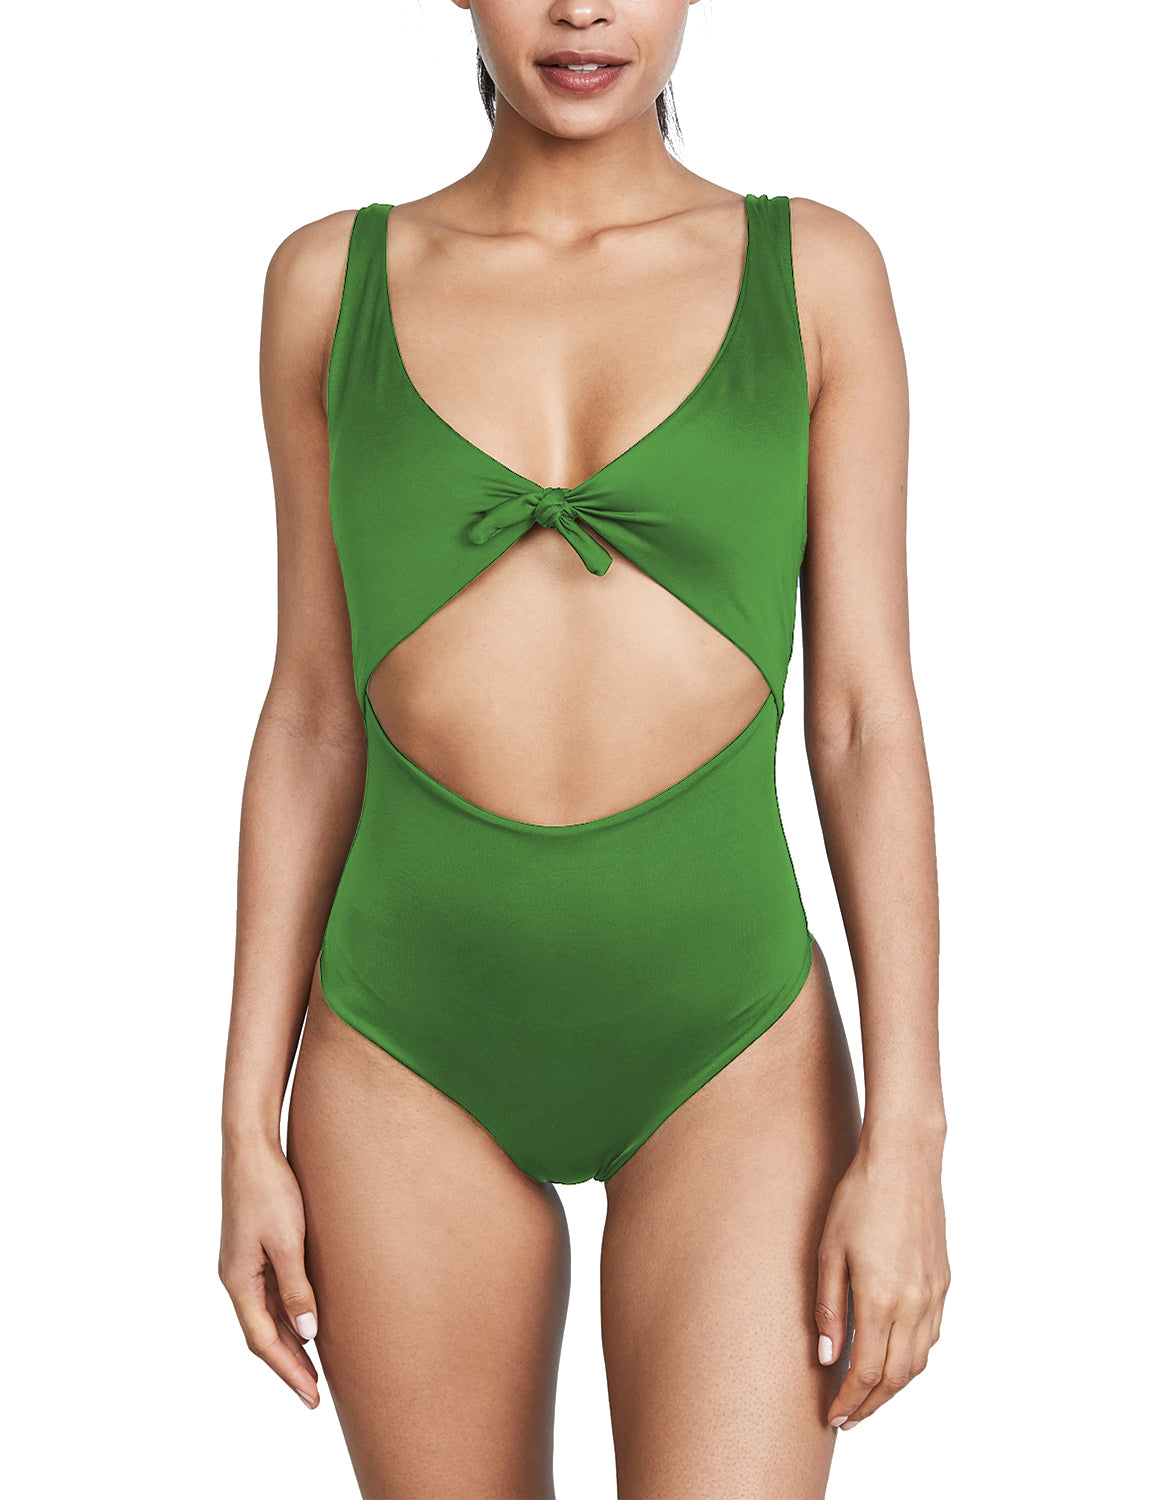 Honeymoon Tie Knot Front Cutout One Piece - Blooming Jelly